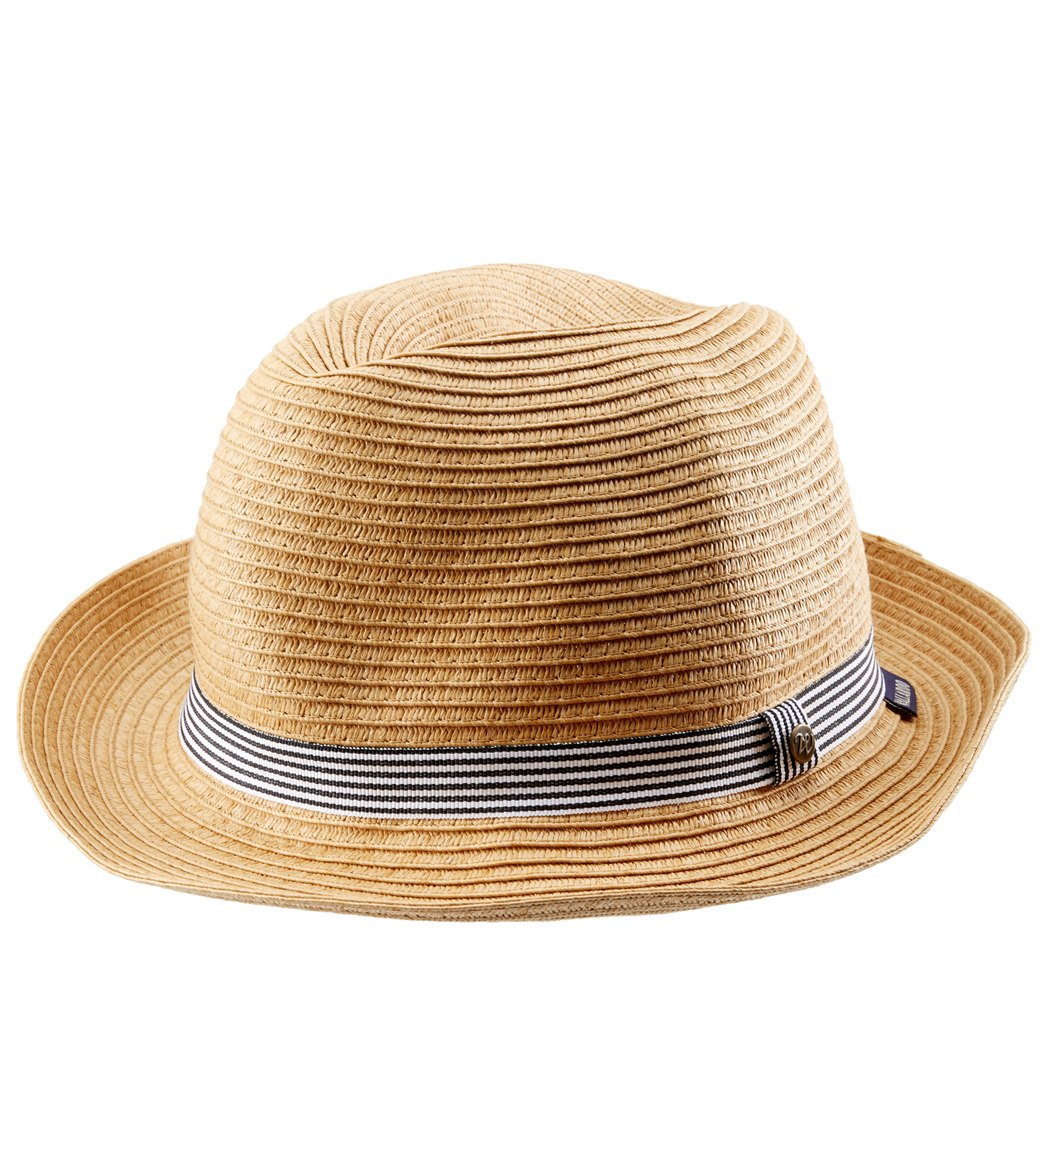 Wallaroo Men s Trilogy Trilby Sun Hat at SwimOutlet.com fbfc5ad72164